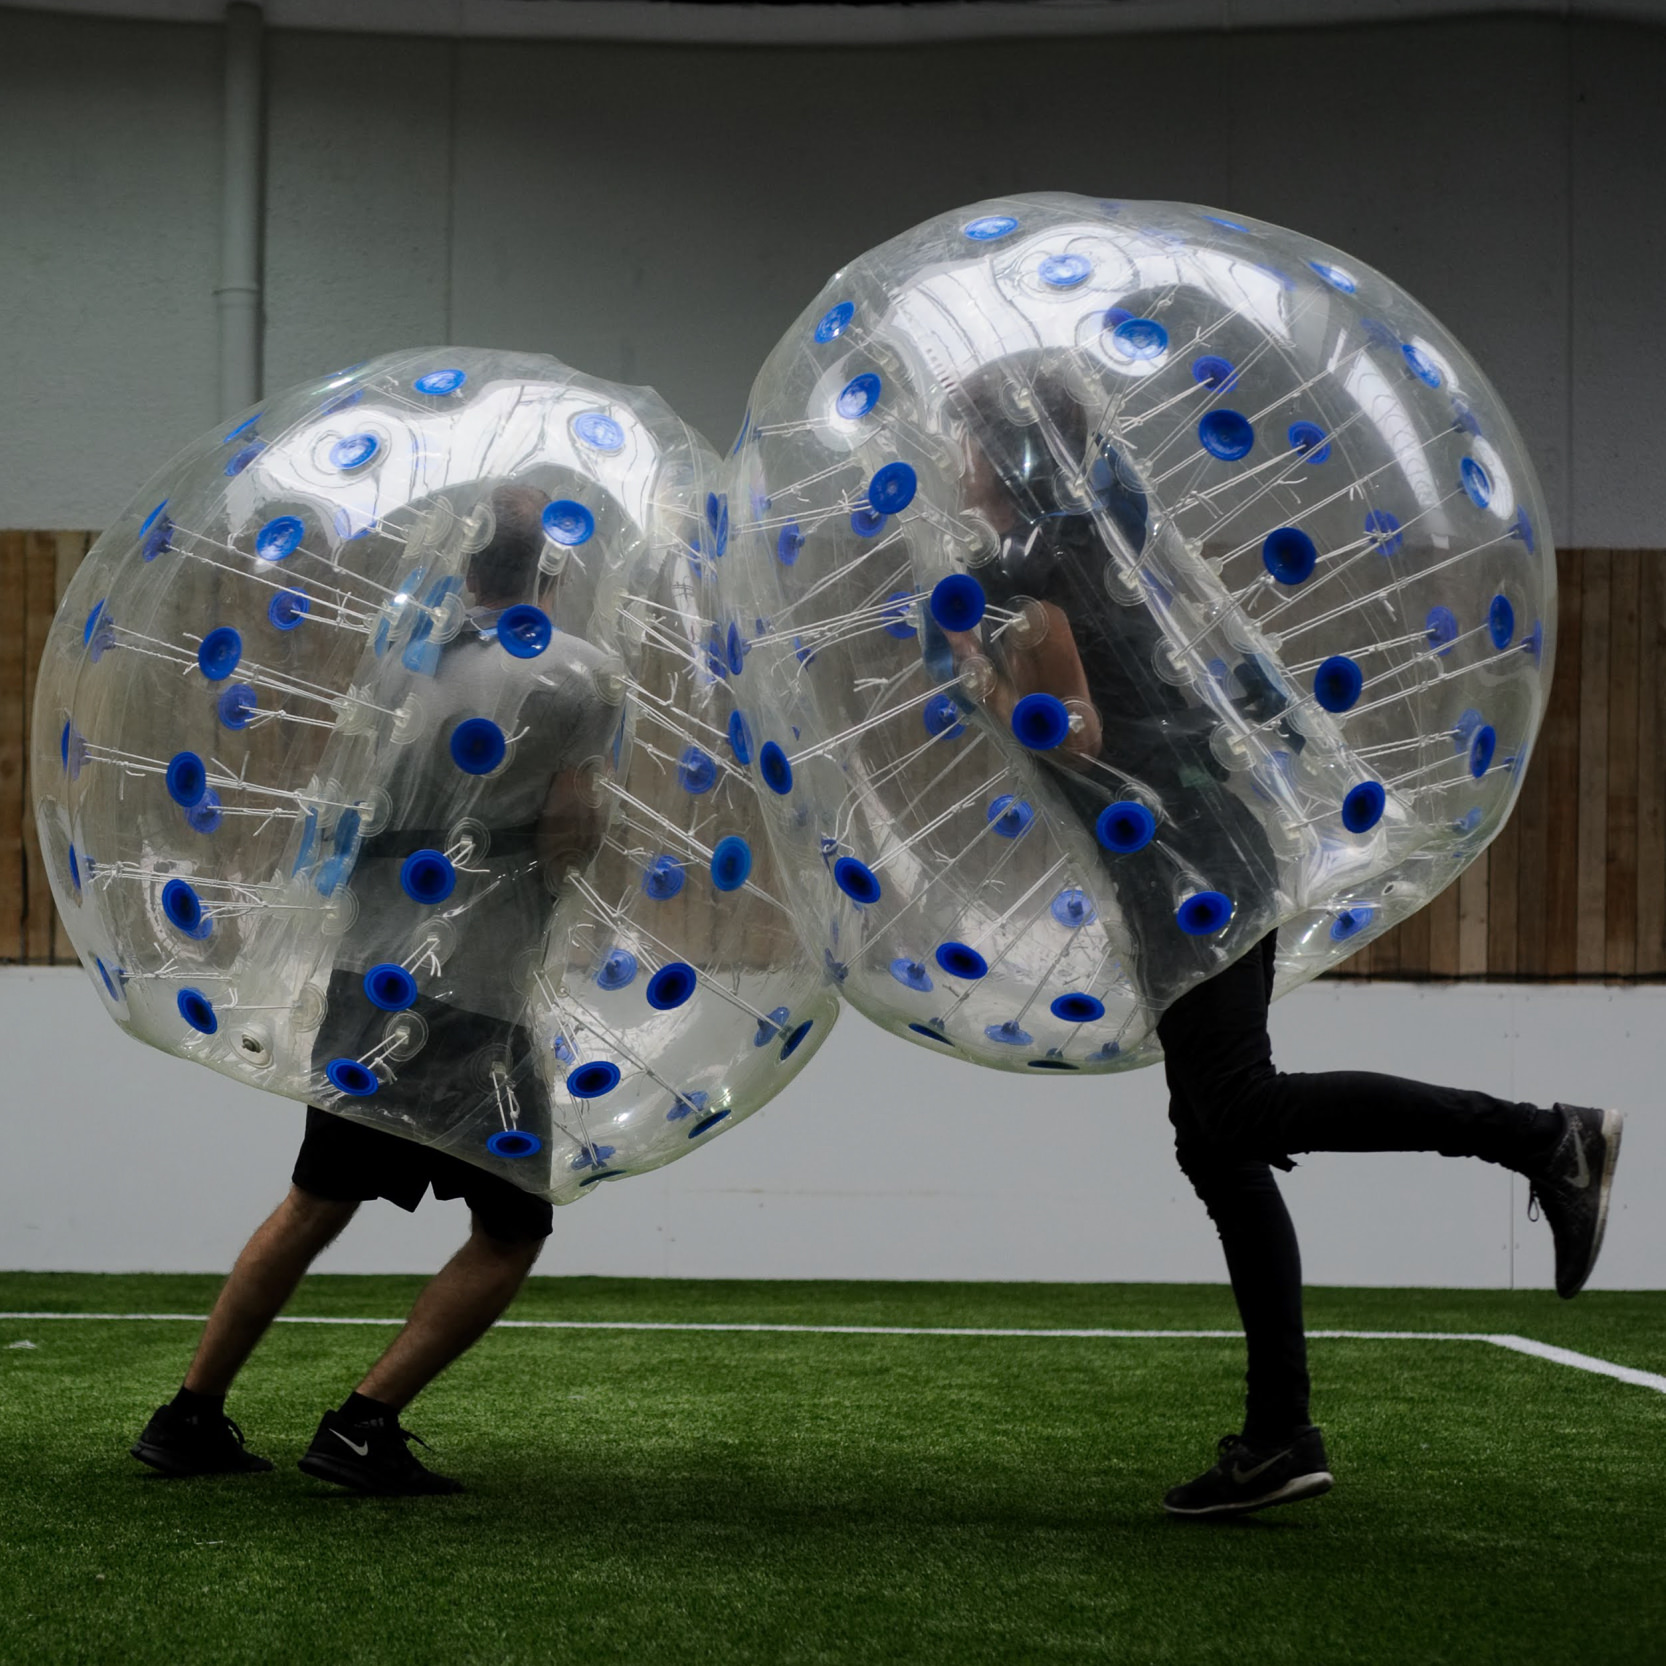 BubbleBall_Limpark_Limburg_Frankfurt_5